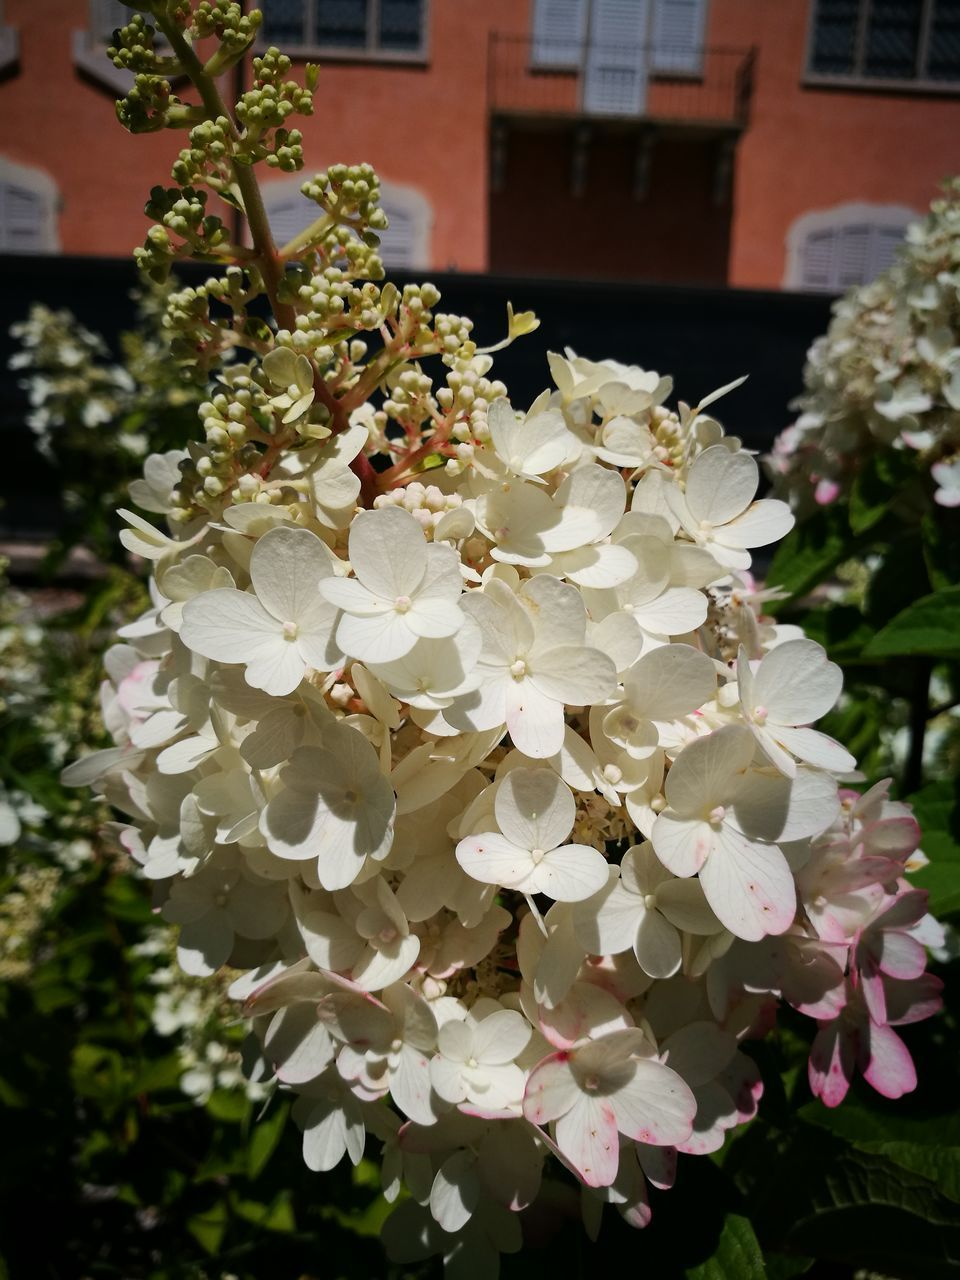 flower, nature, fragility, white color, plant, petal, beauty in nature, growth, no people, freshness, outdoors, hydrangea, close-up, day, flower head, blooming, building exterior, architecture